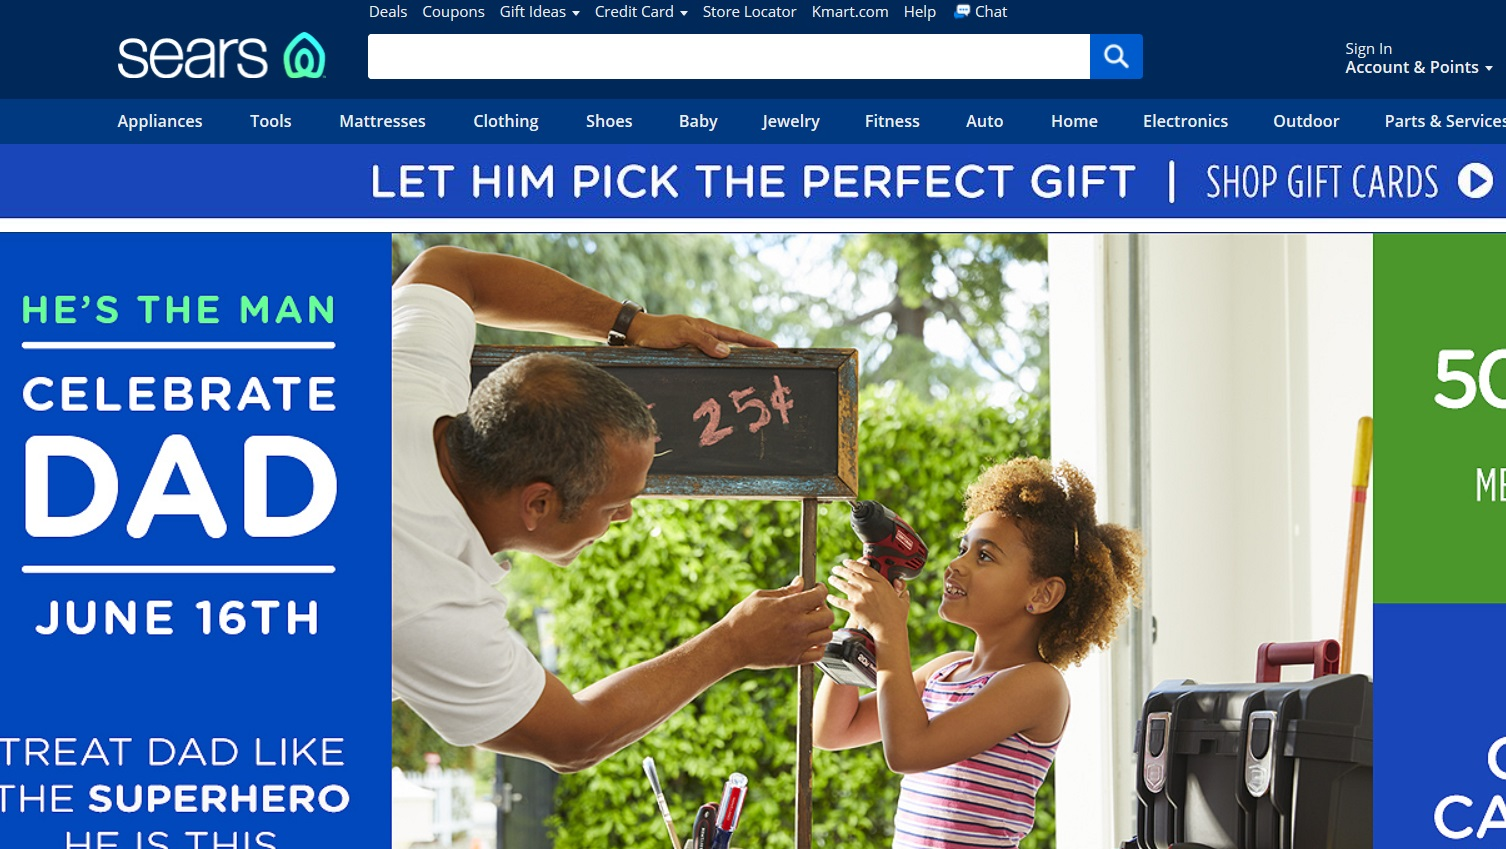 Homepage of Sears website with a search engine.